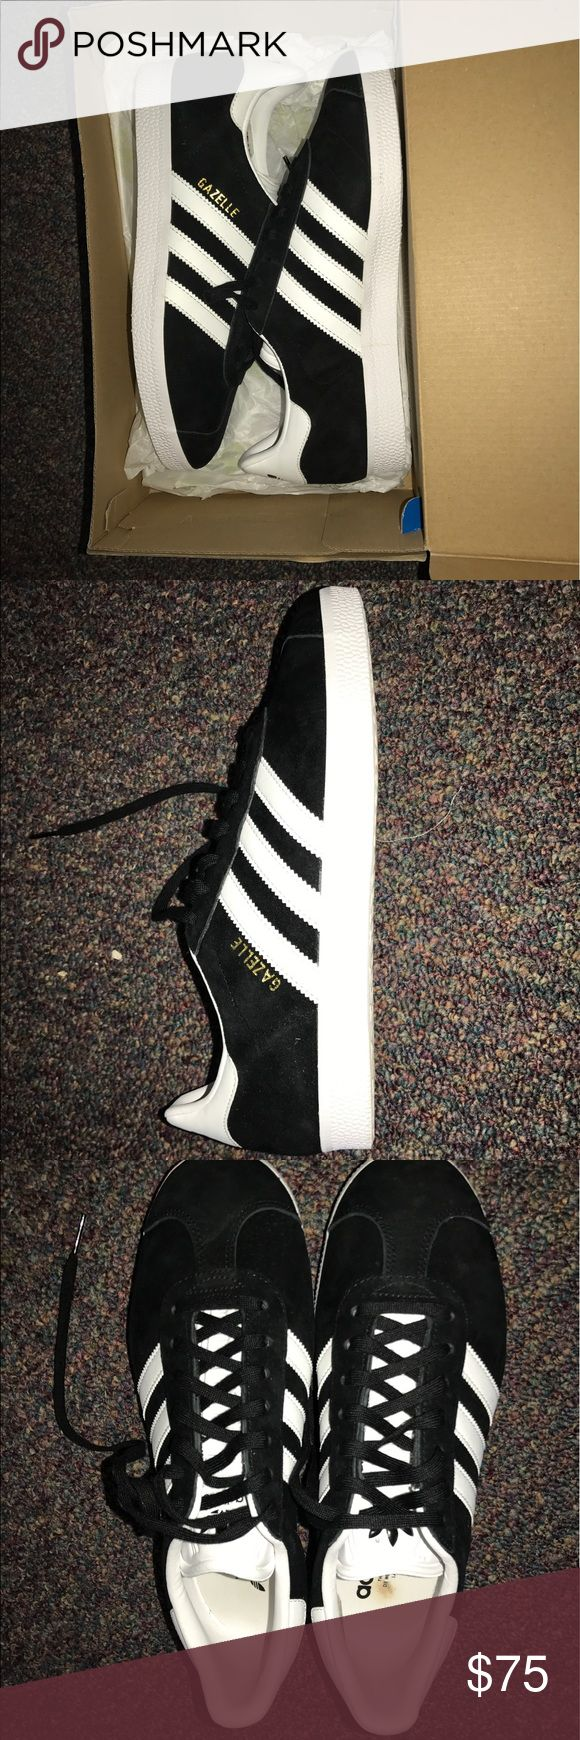 Black New Adidas Gazelle (female 8) Had for 2 months, never worn before. Too big Adidas Shoes Sneakers